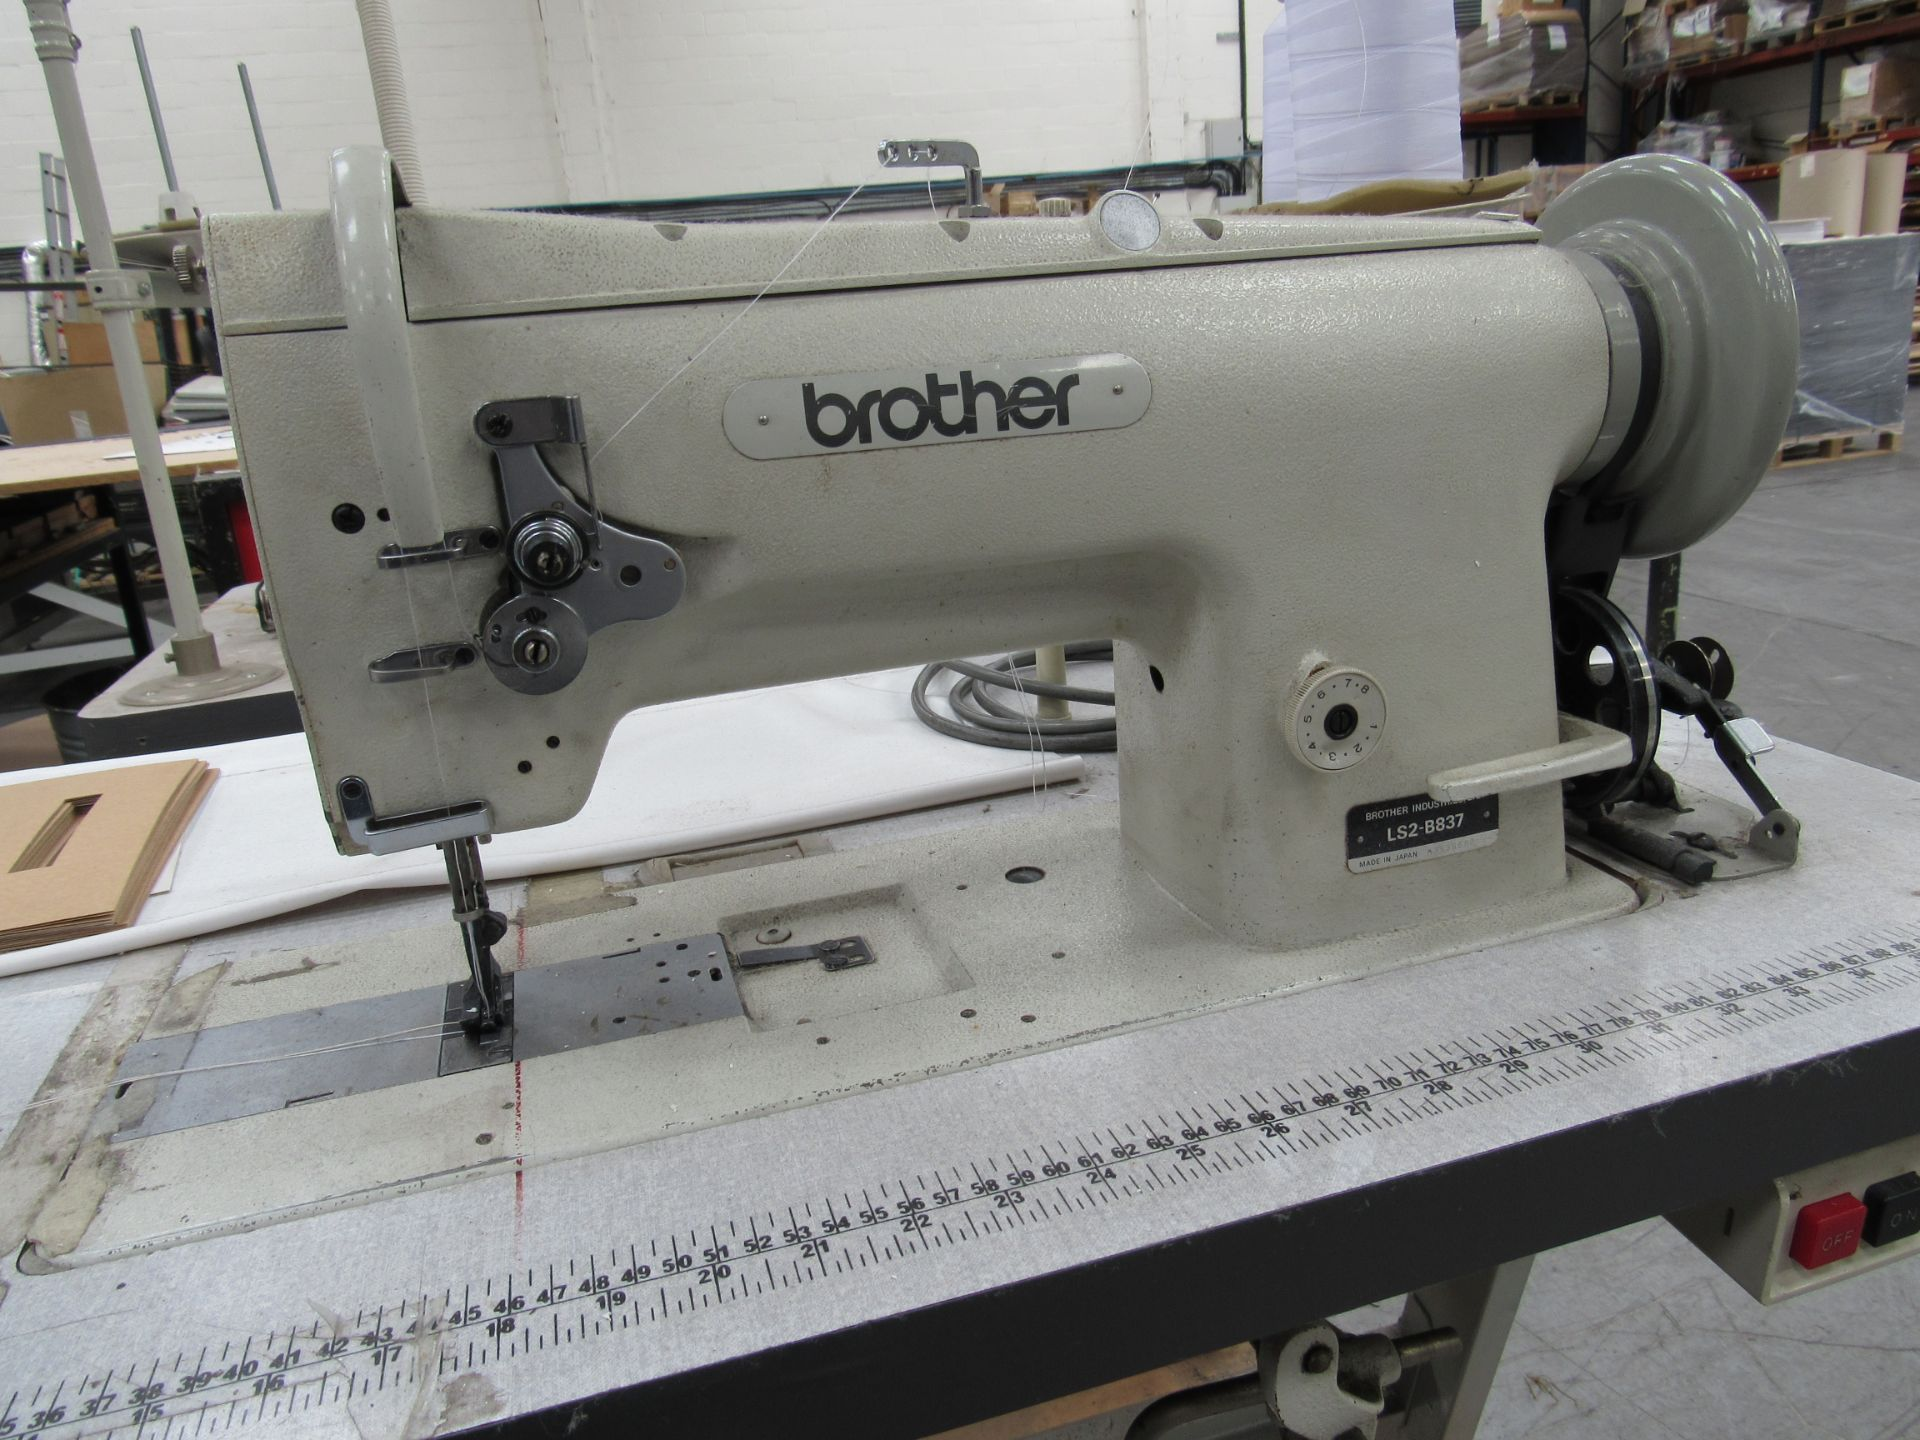 Brother LS2-B837 Industrial Sewing Machine Serial Number M3538580 - Image 3 of 3